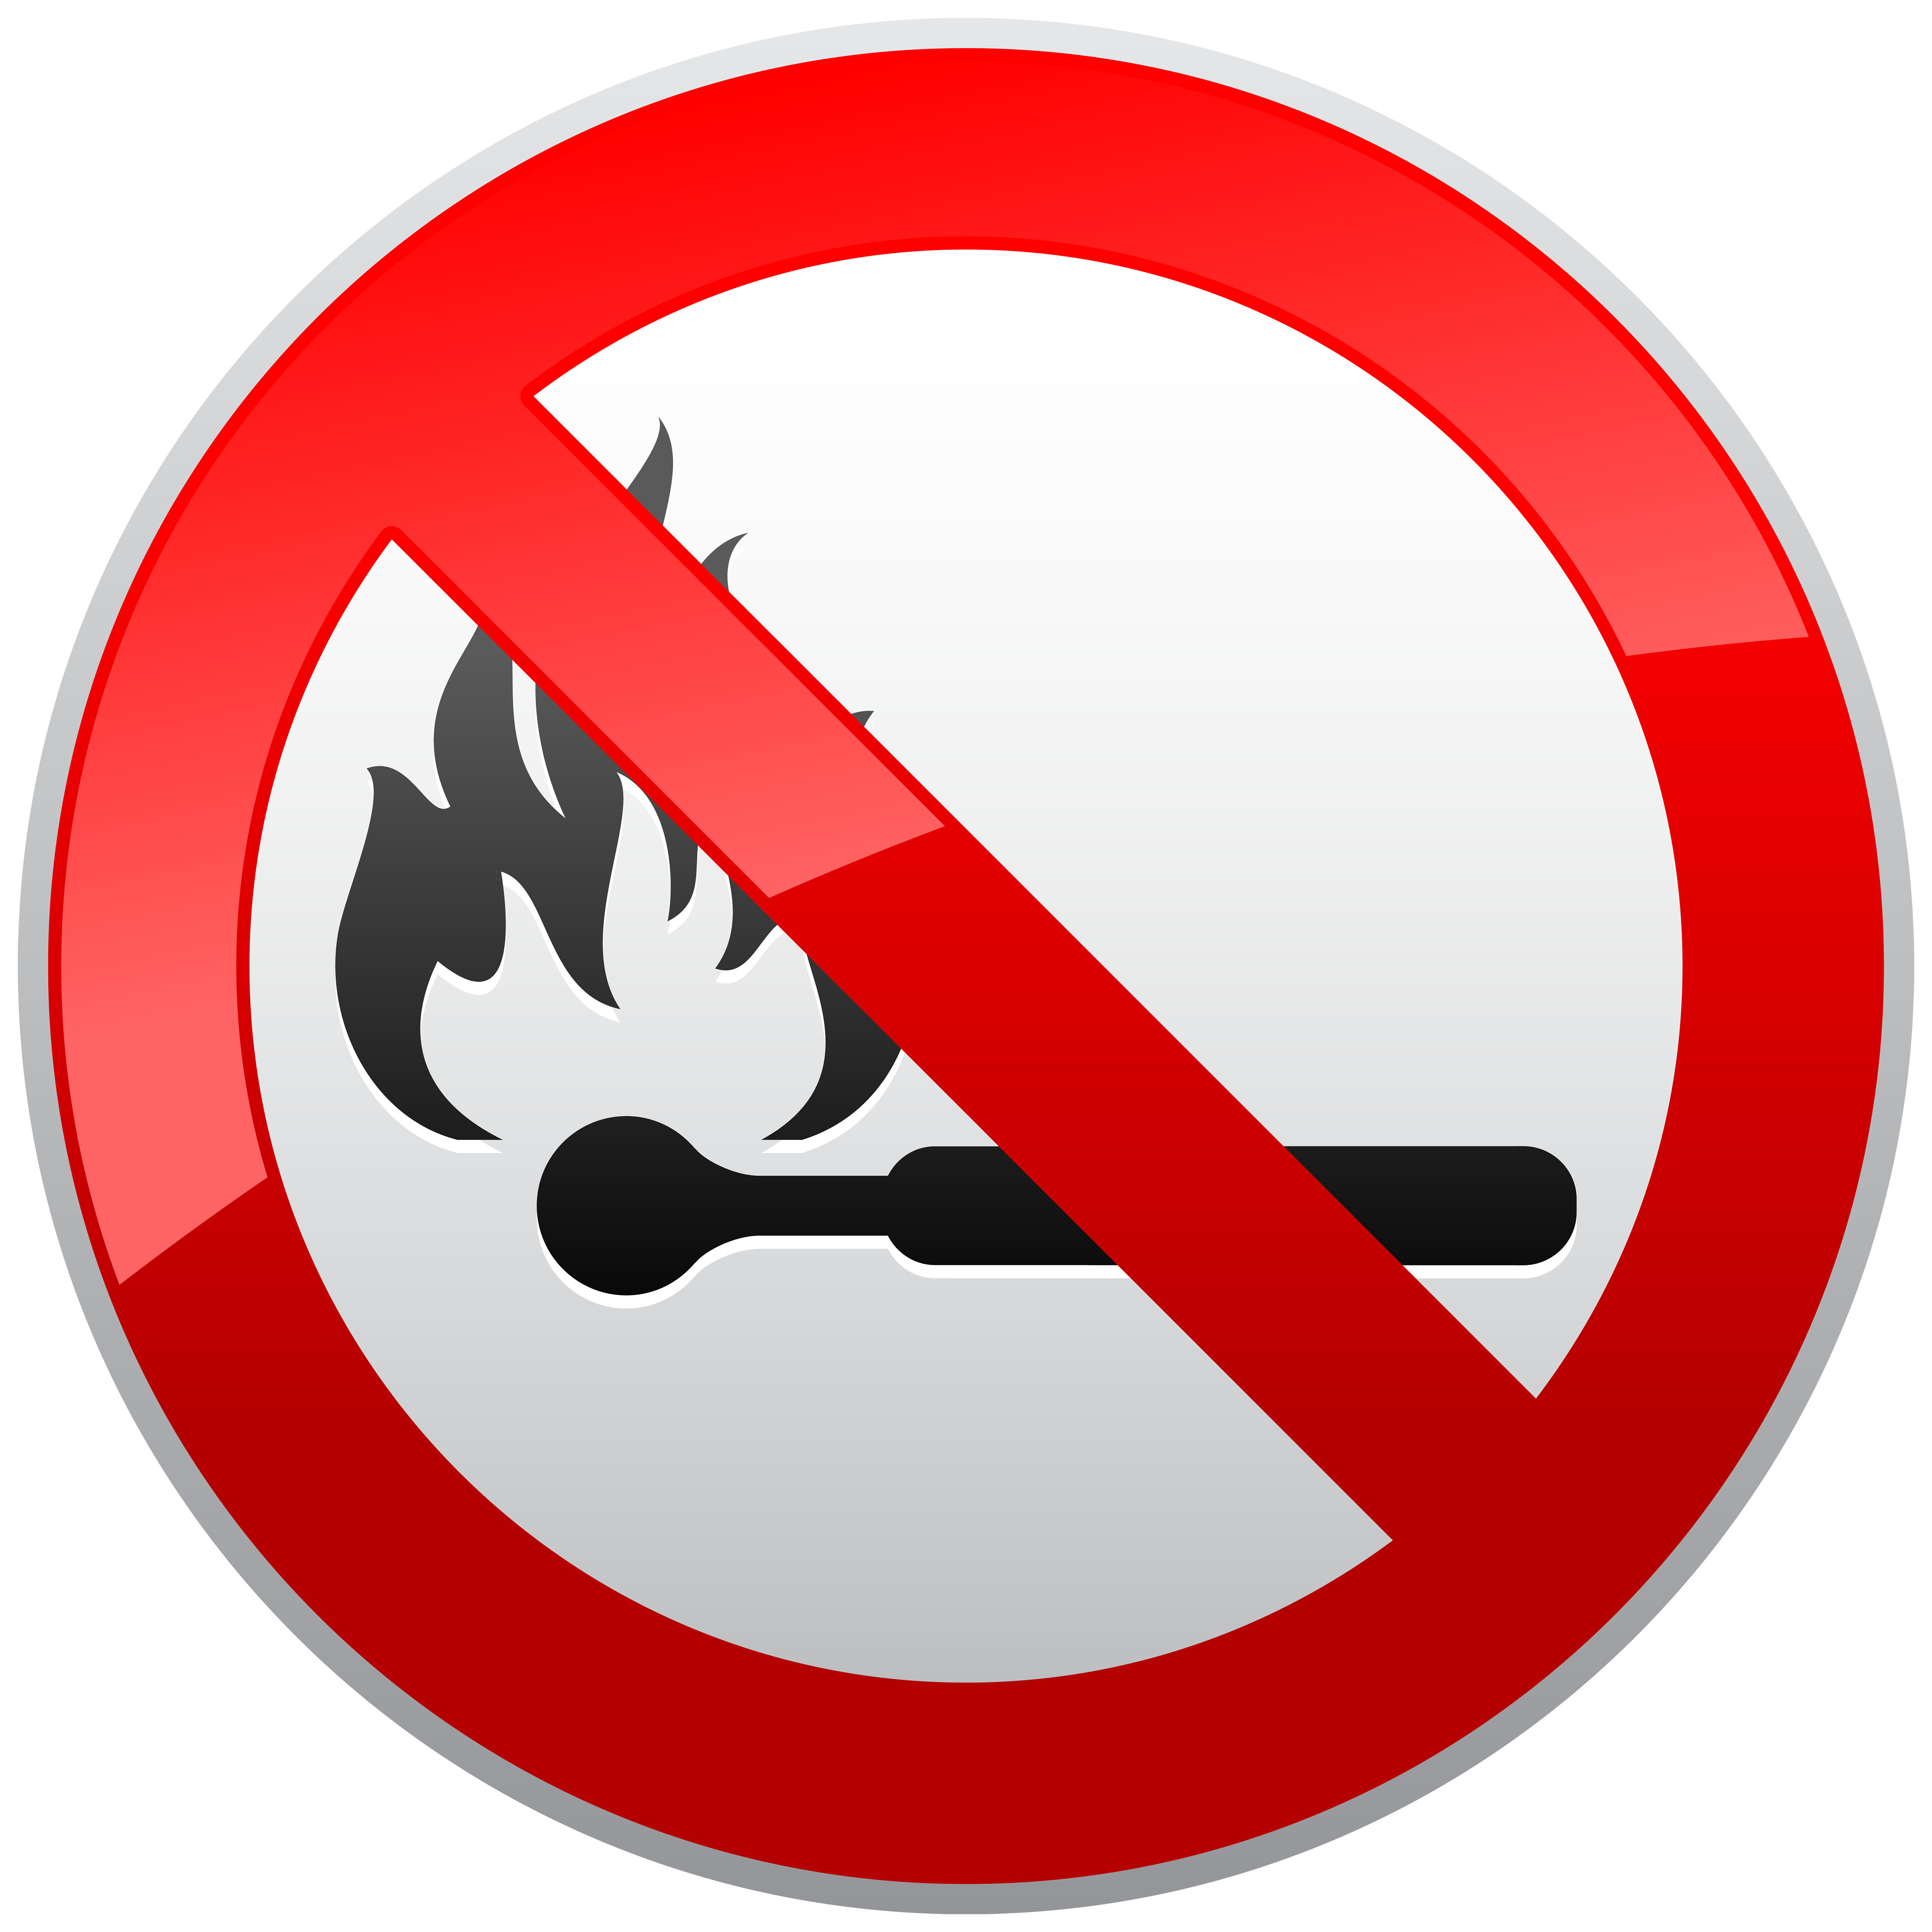 No naked prohibition sign. Clipart flames emoji